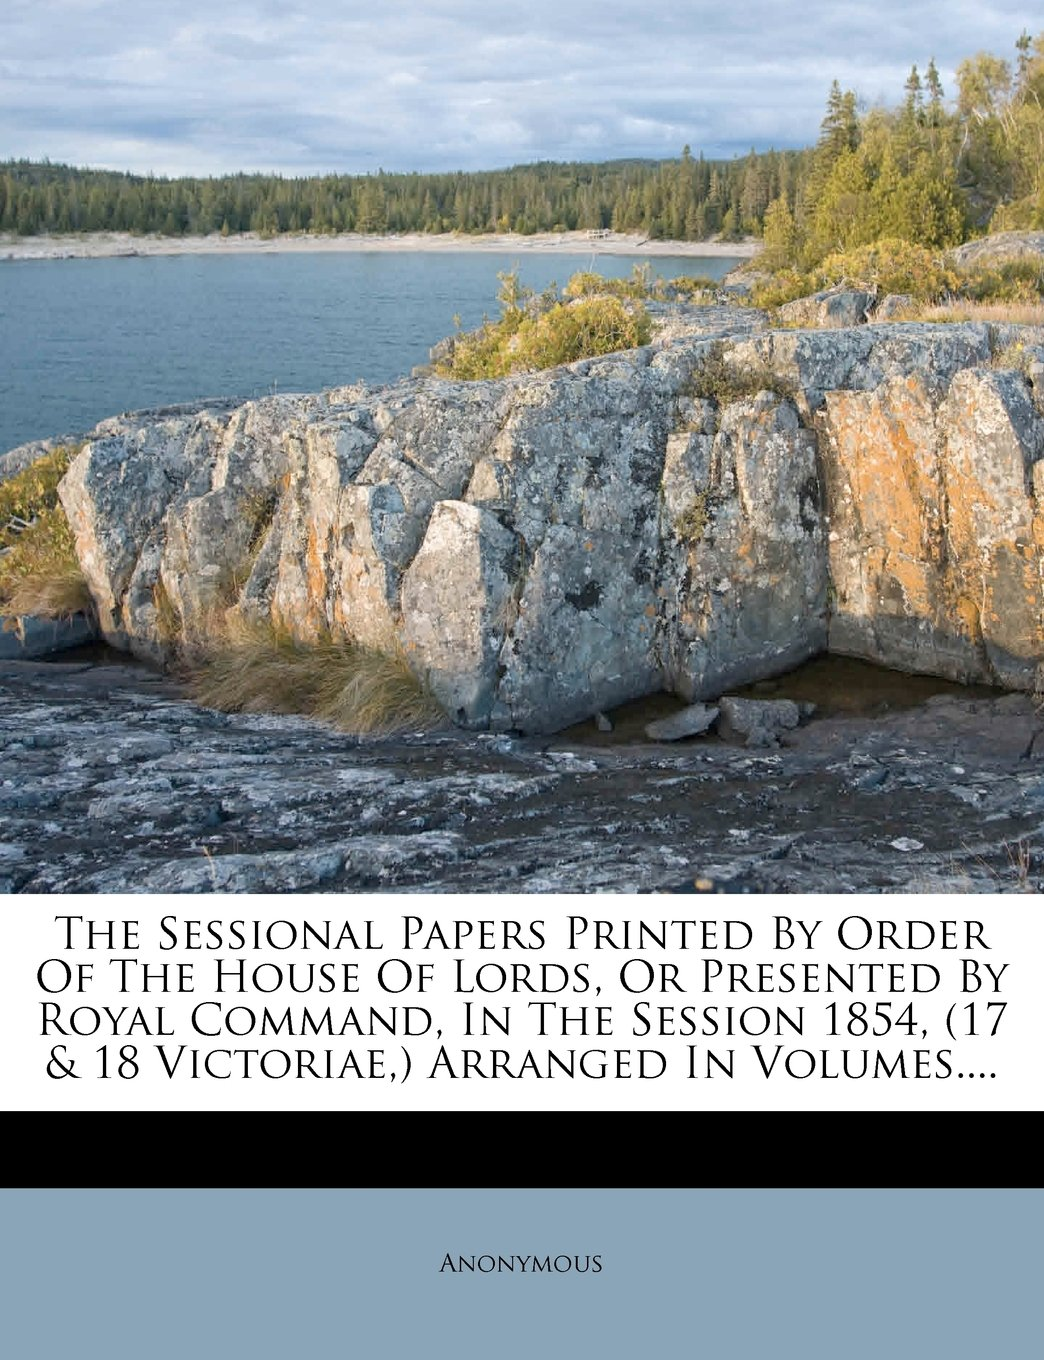 The Sessional Papers Printed By Order Of The House Of Lords, Or Presented By Royal Command, In The Session 1854, (17 & 18 Victoriae,) Arranged In Volumes.... ebook